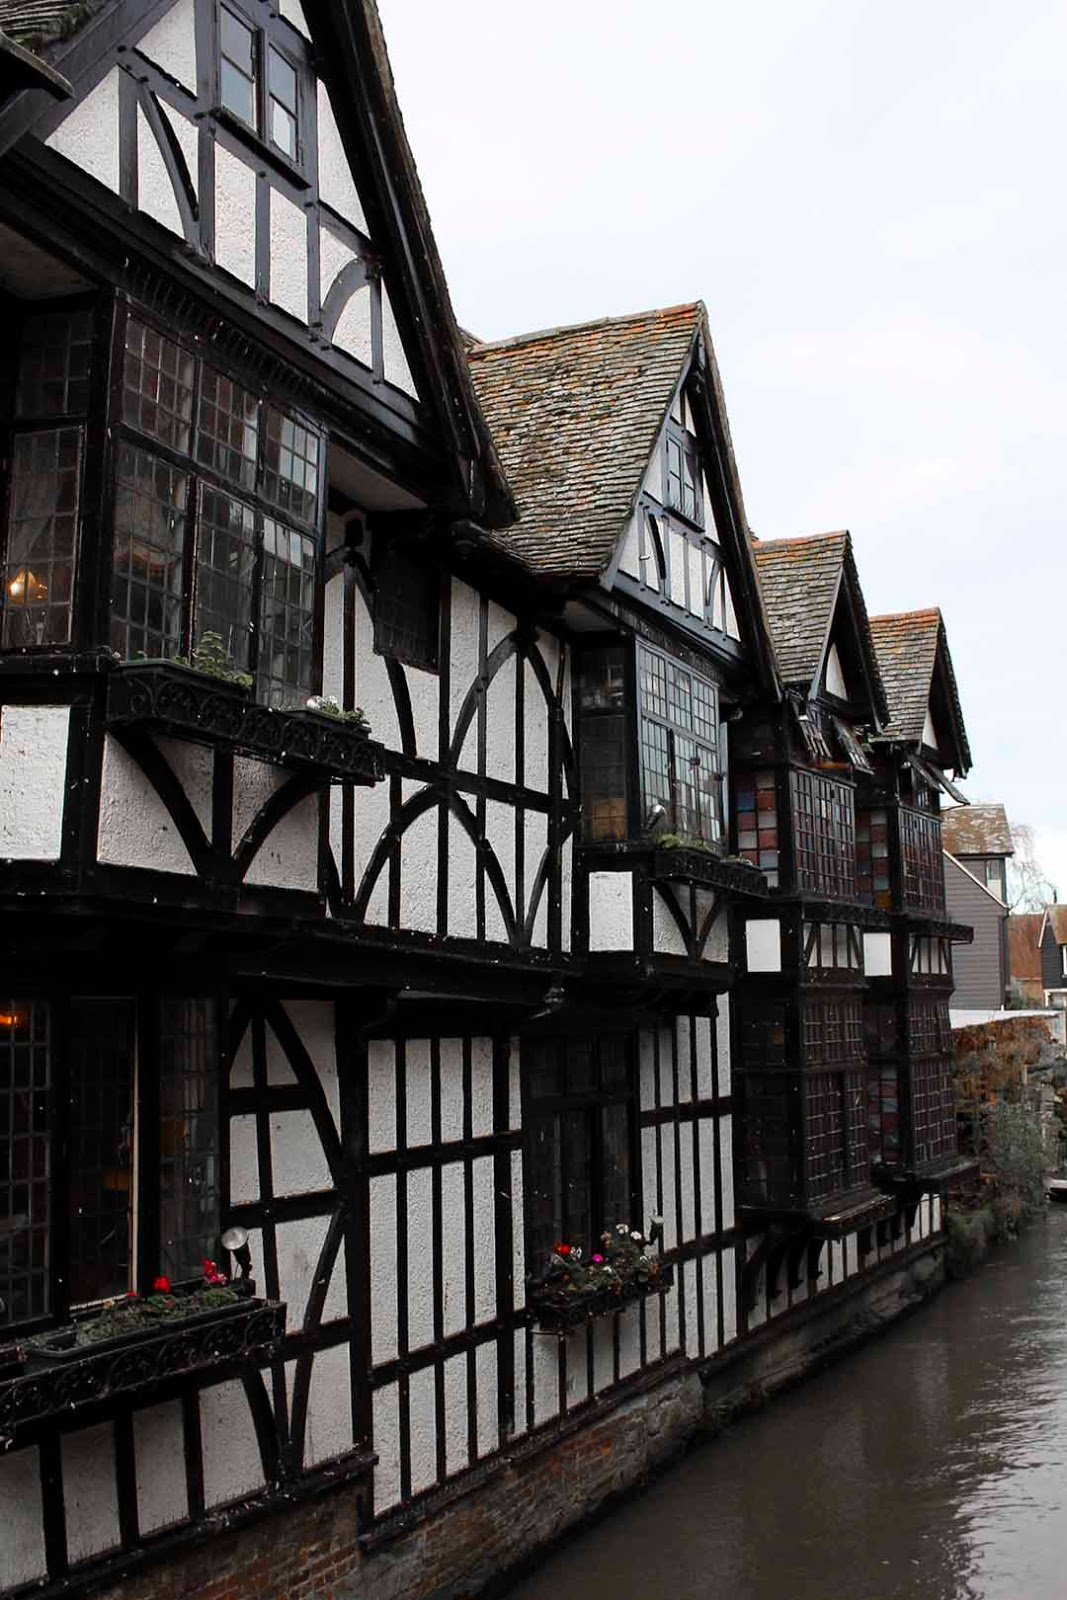 Westgate, Canterbury street, kent, visiting, town, architecture, street photography,